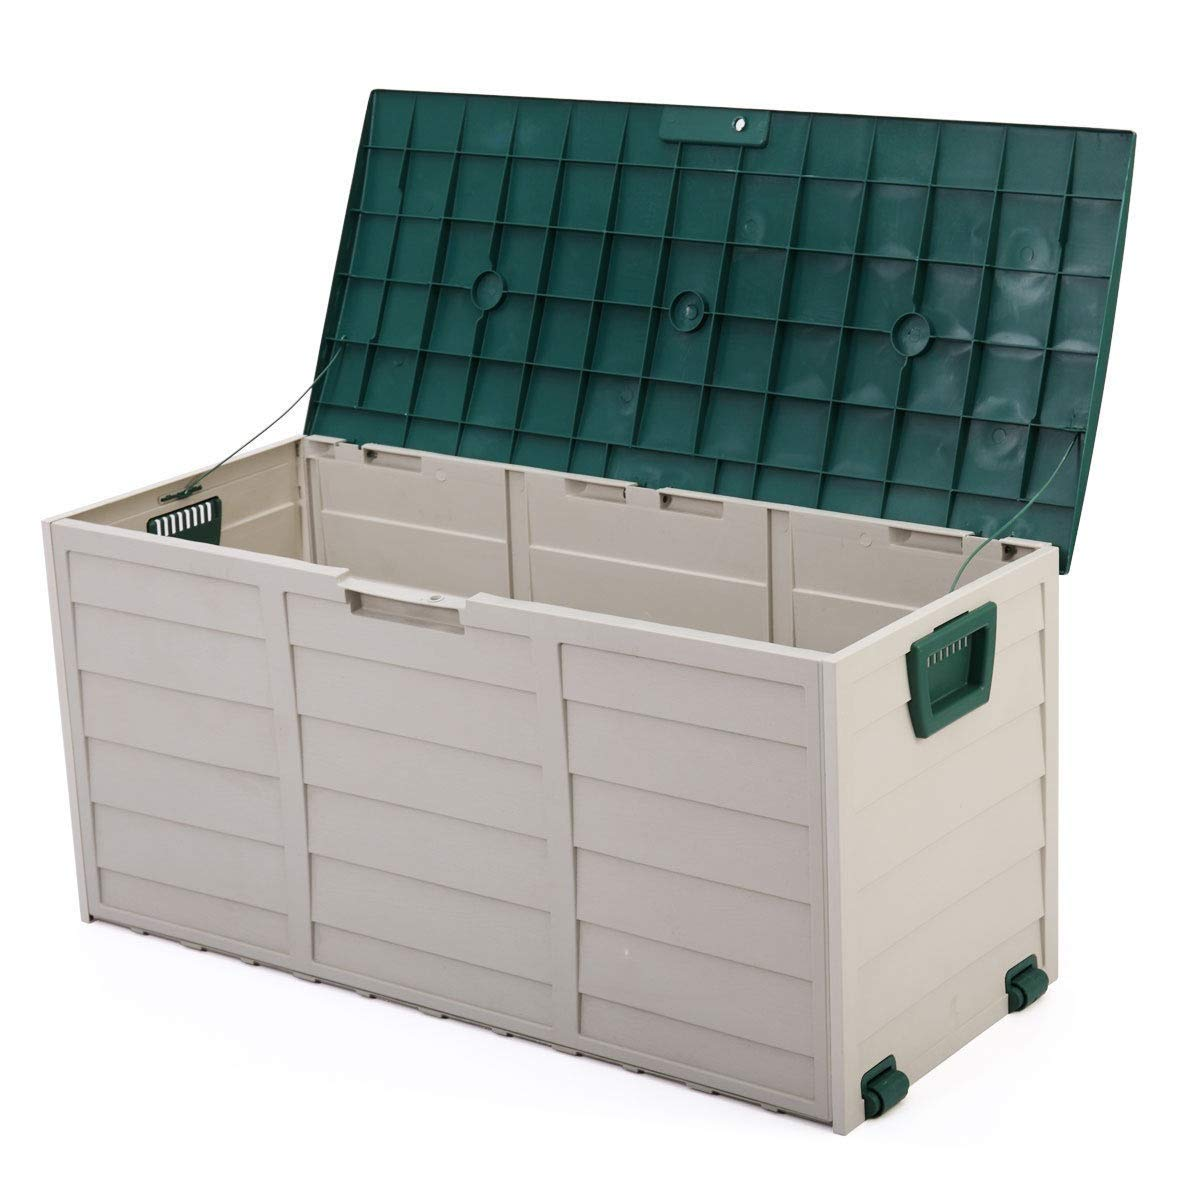 Cypressshop Patio Sheds Outdoor Garden Storage 44'' Deck Box Organiner Backyard Tool Bench Container 79 Gallon Green Gray Weartherproof